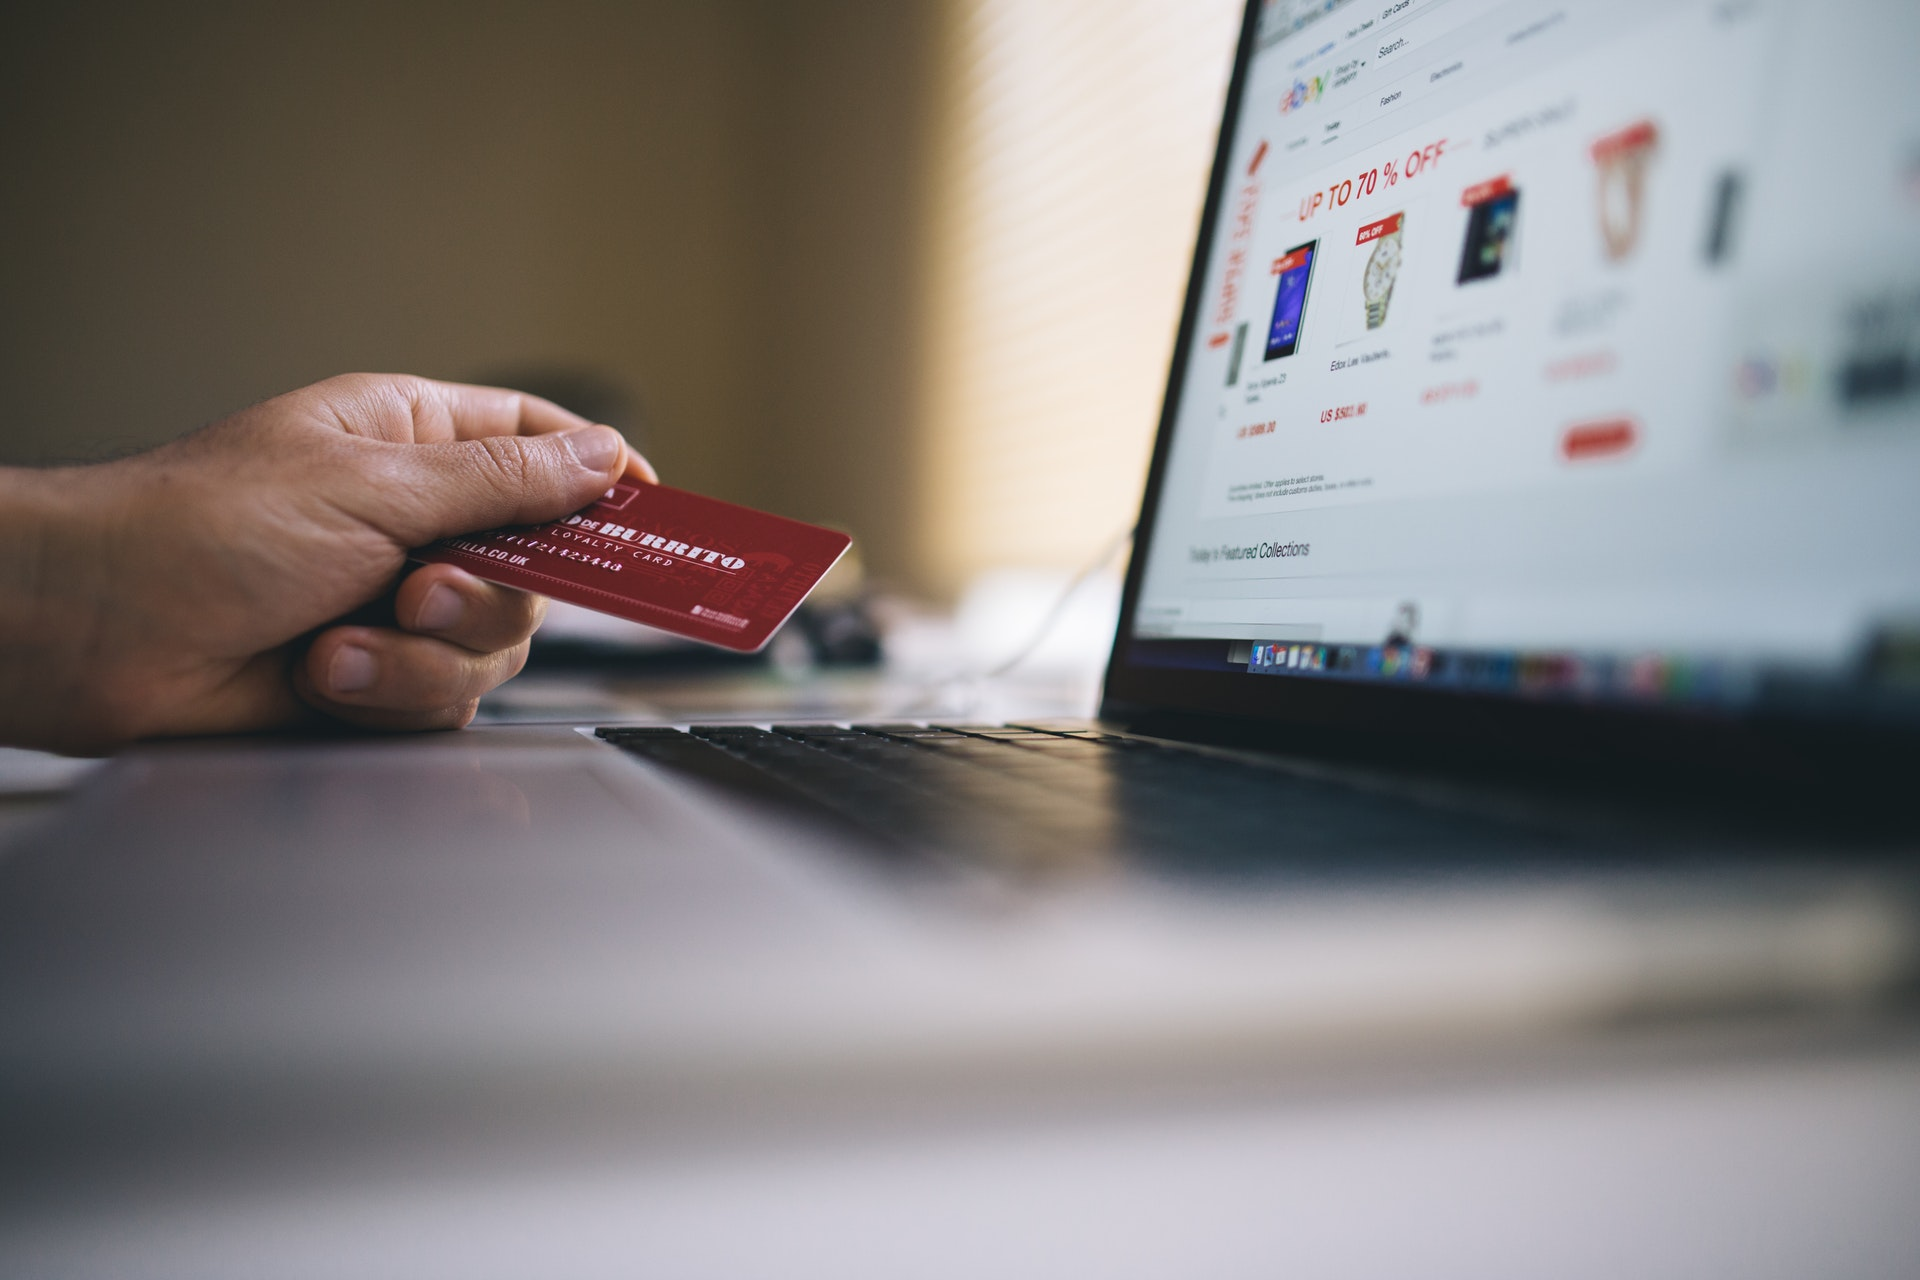 For ecommerce to keep on growing, product range and quality must improve